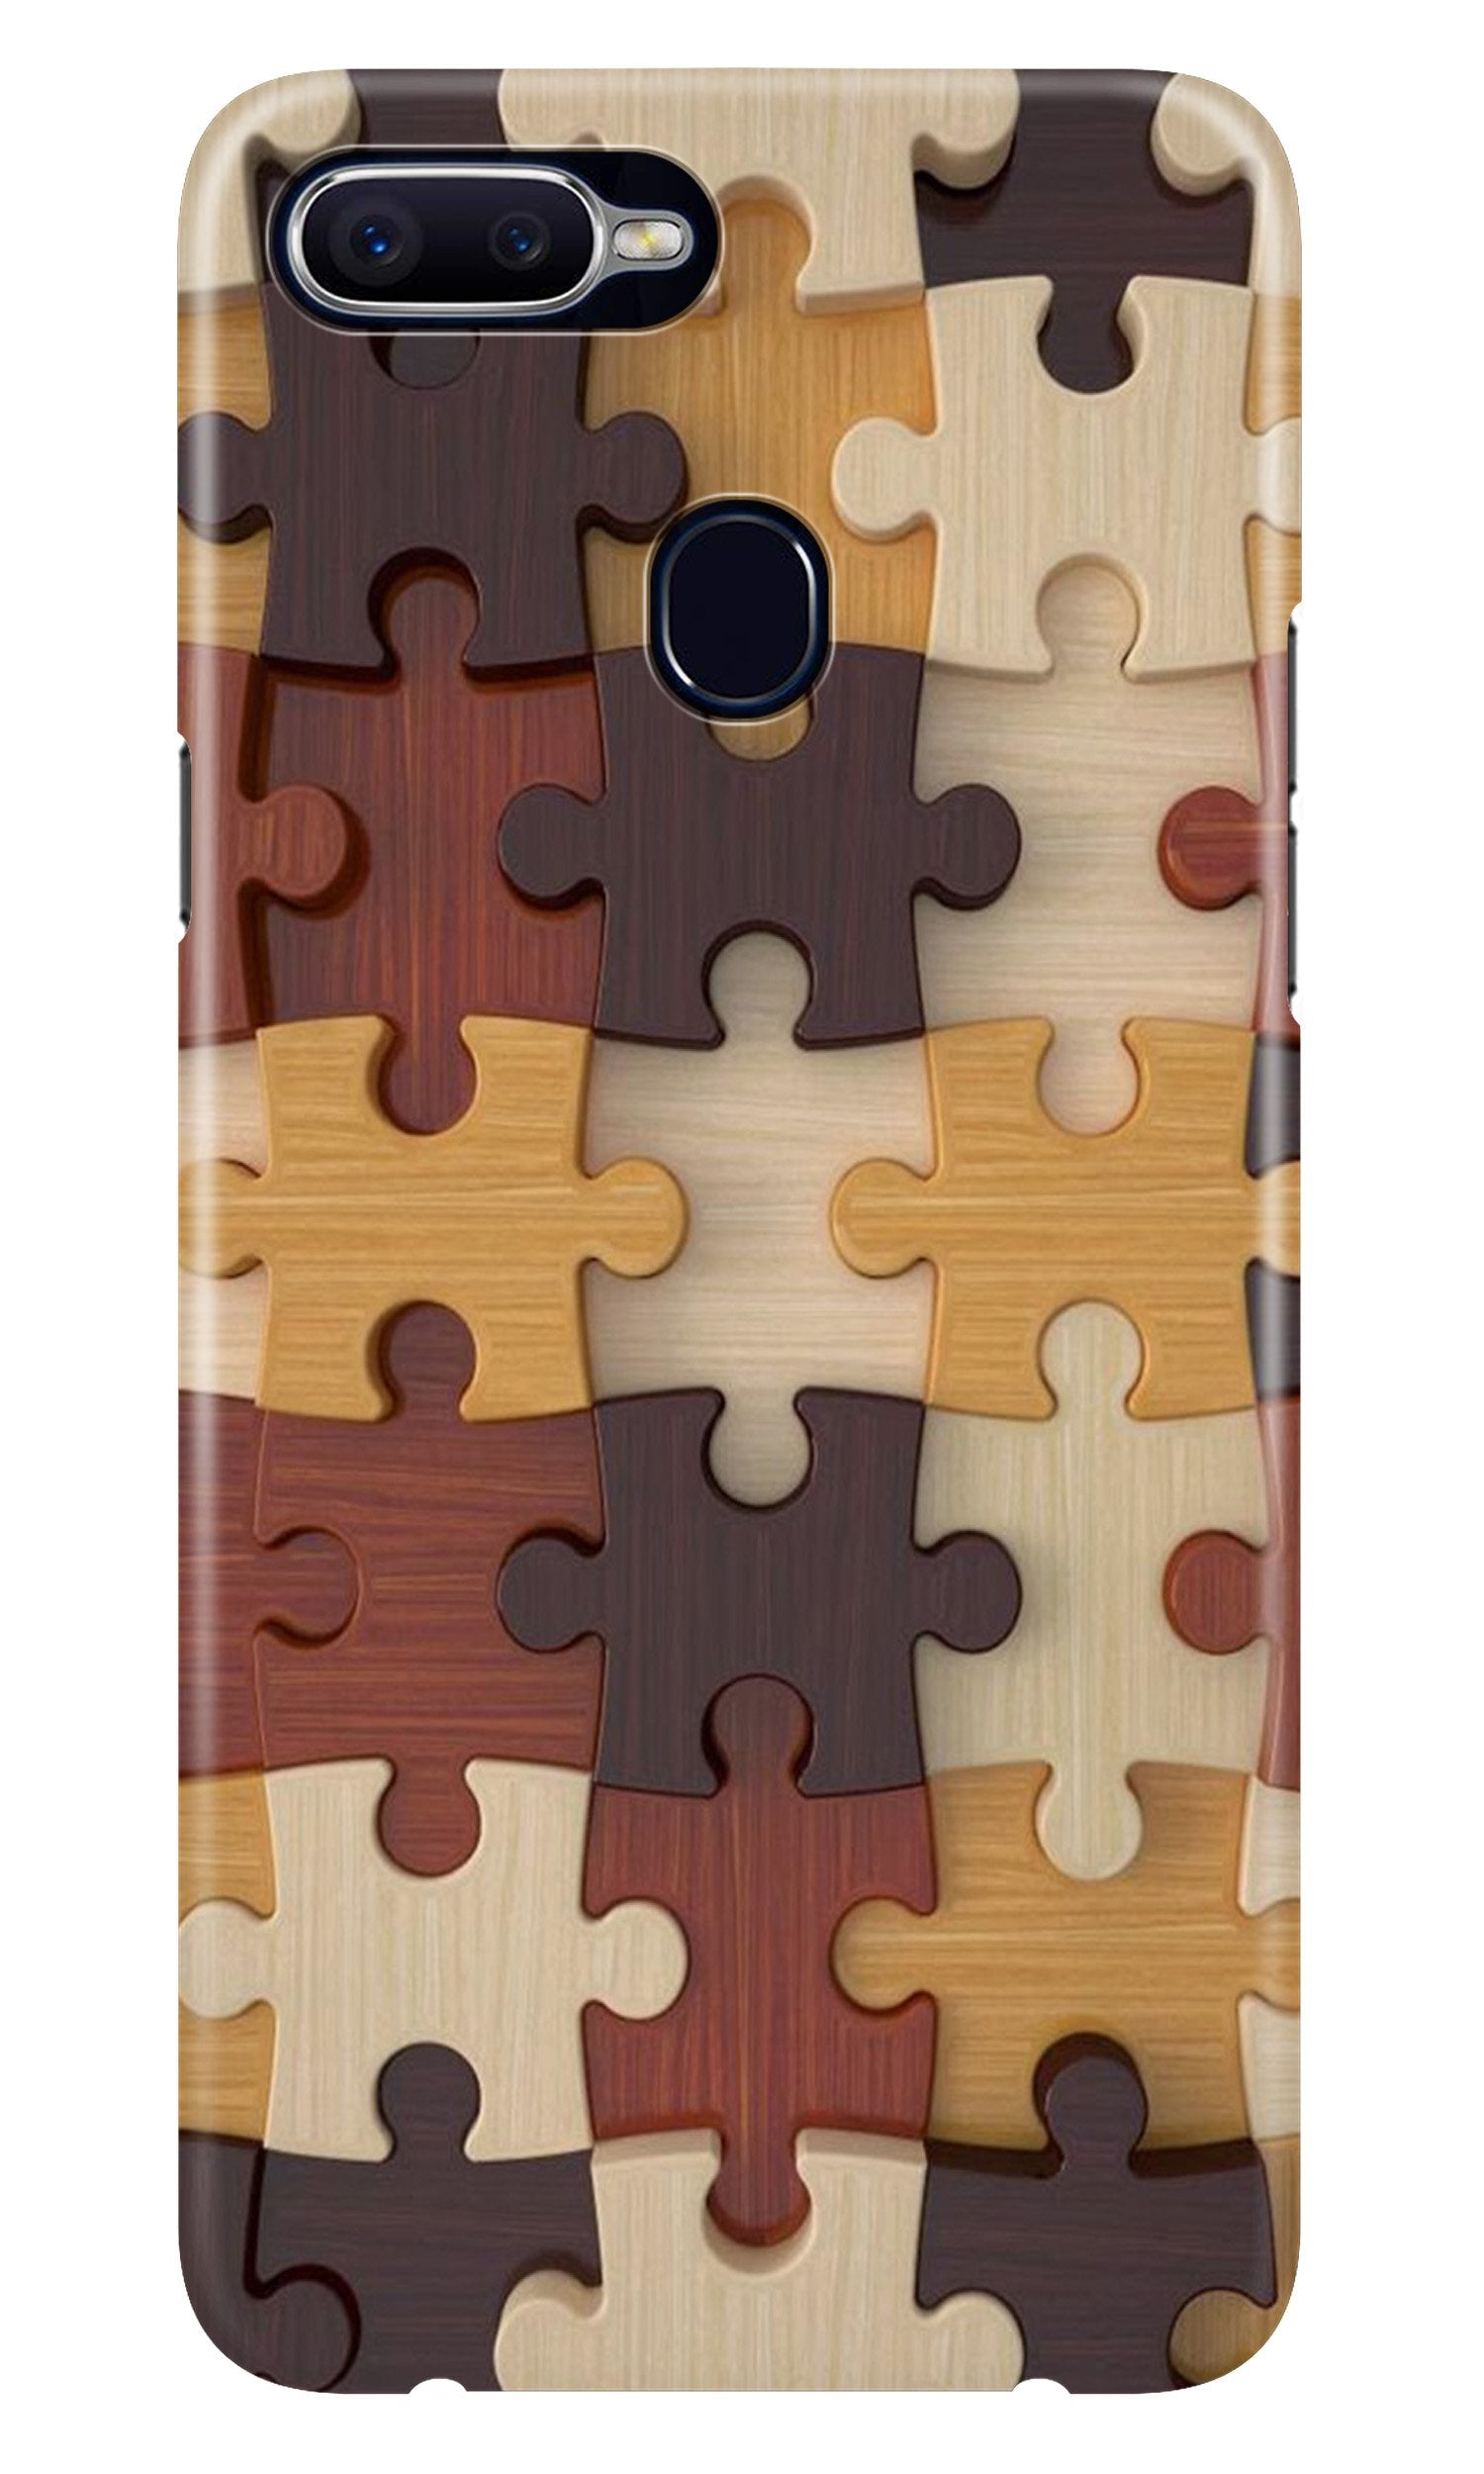 Puzzle Pattern Case for Oppo A5s (Design No. 217)